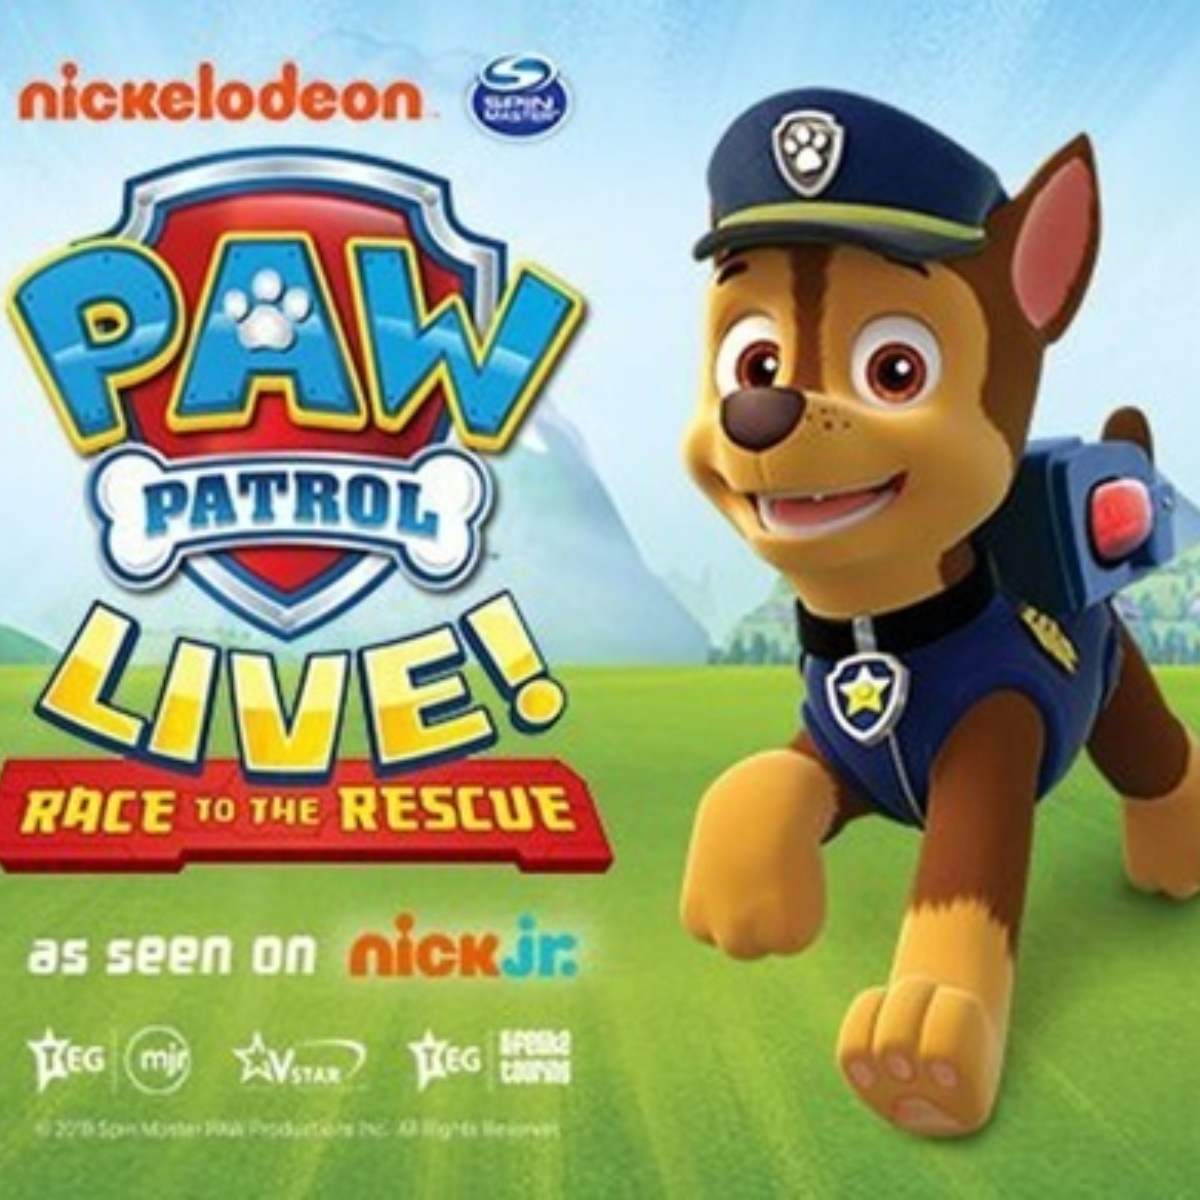 PAW PATROL LIVE! - Race to the Rescue (Nottingham) Images